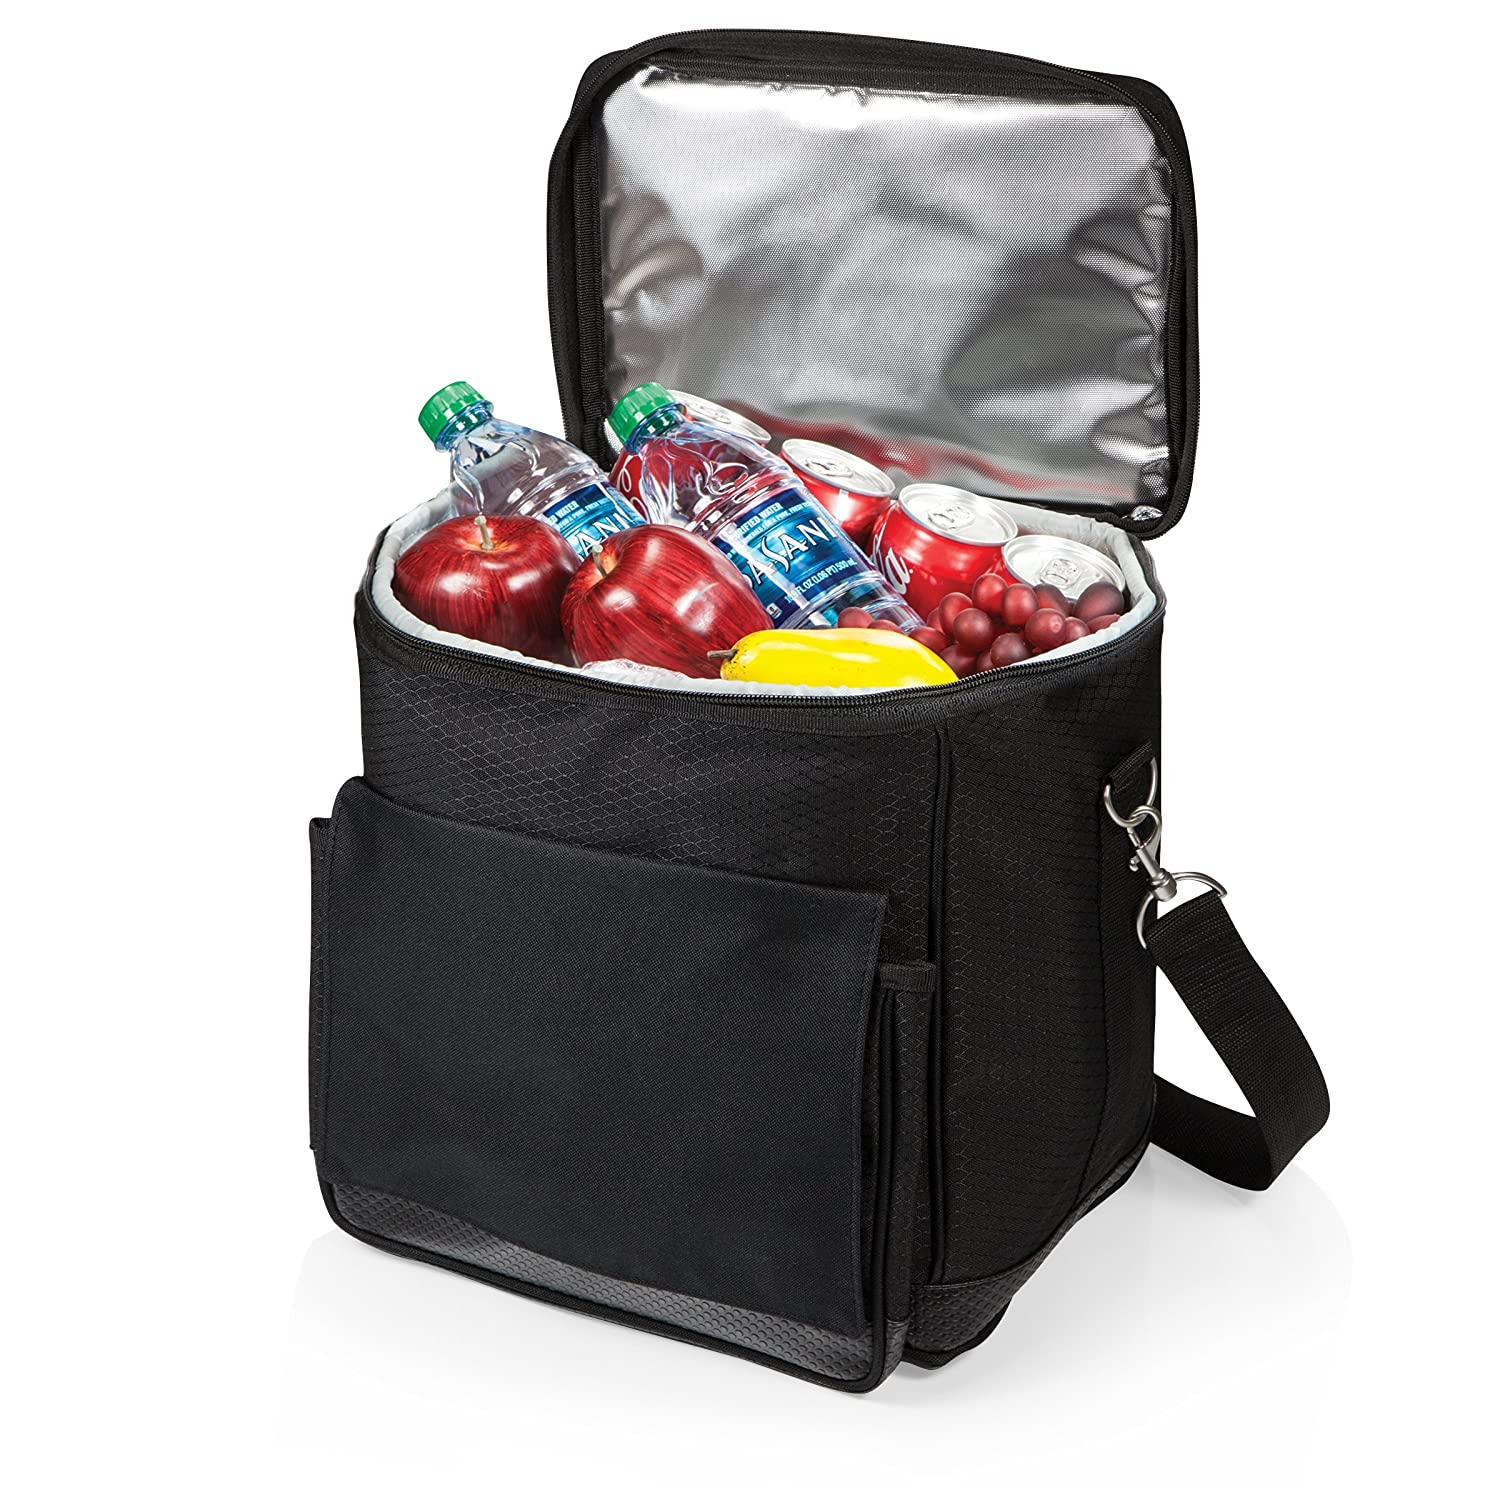 Removable Interior Dividers Allow You to Convert Wine Carrier into a Cooler